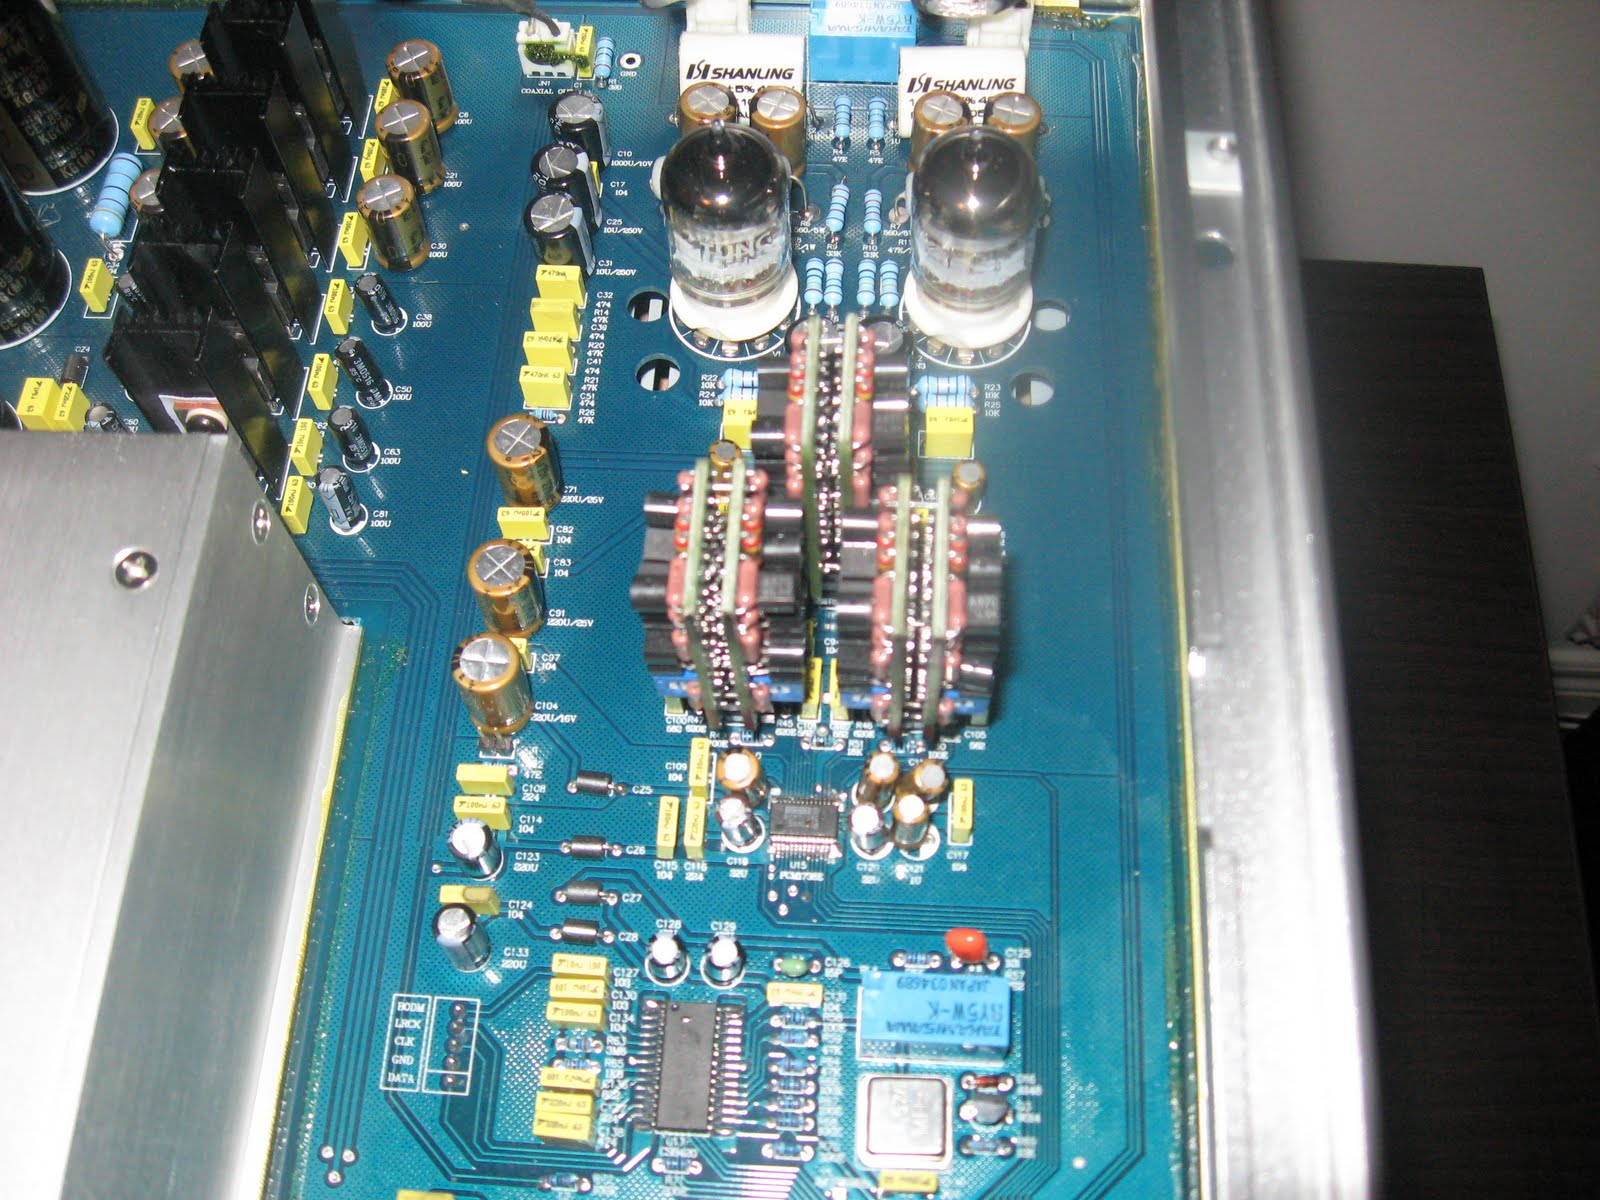 Cool Electronics Circuits March 2011 Burson Audio Shangling Cd 80 Player Discrete Opamp Upgrade By Antonio T